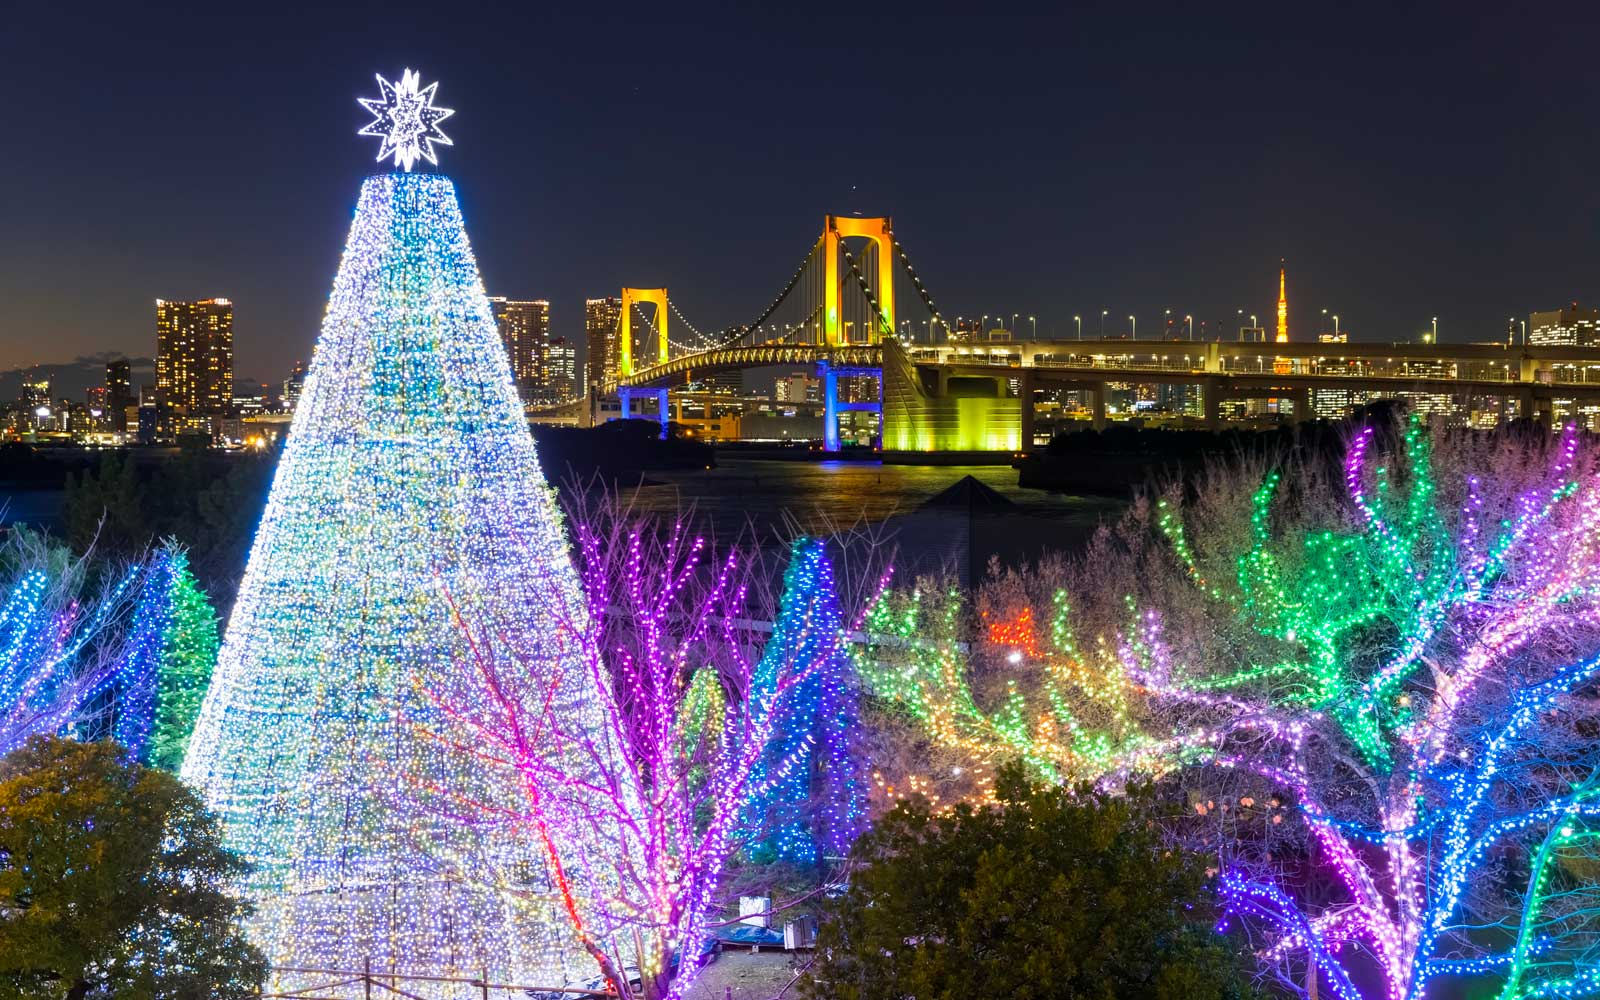 Rainbow Bridge Christmas display in Tokyo, Japan